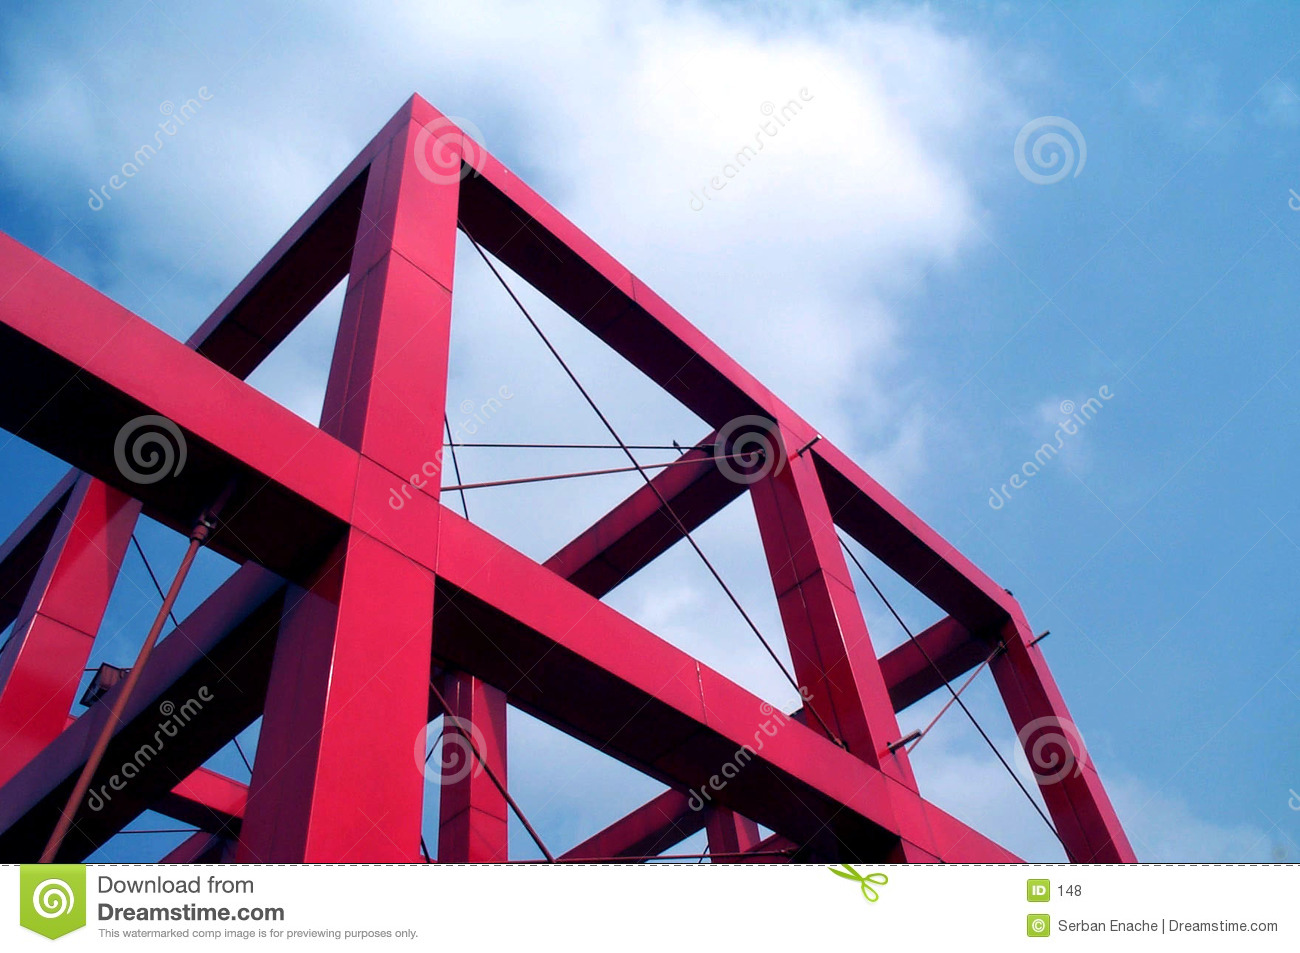 Red cube against blue sky